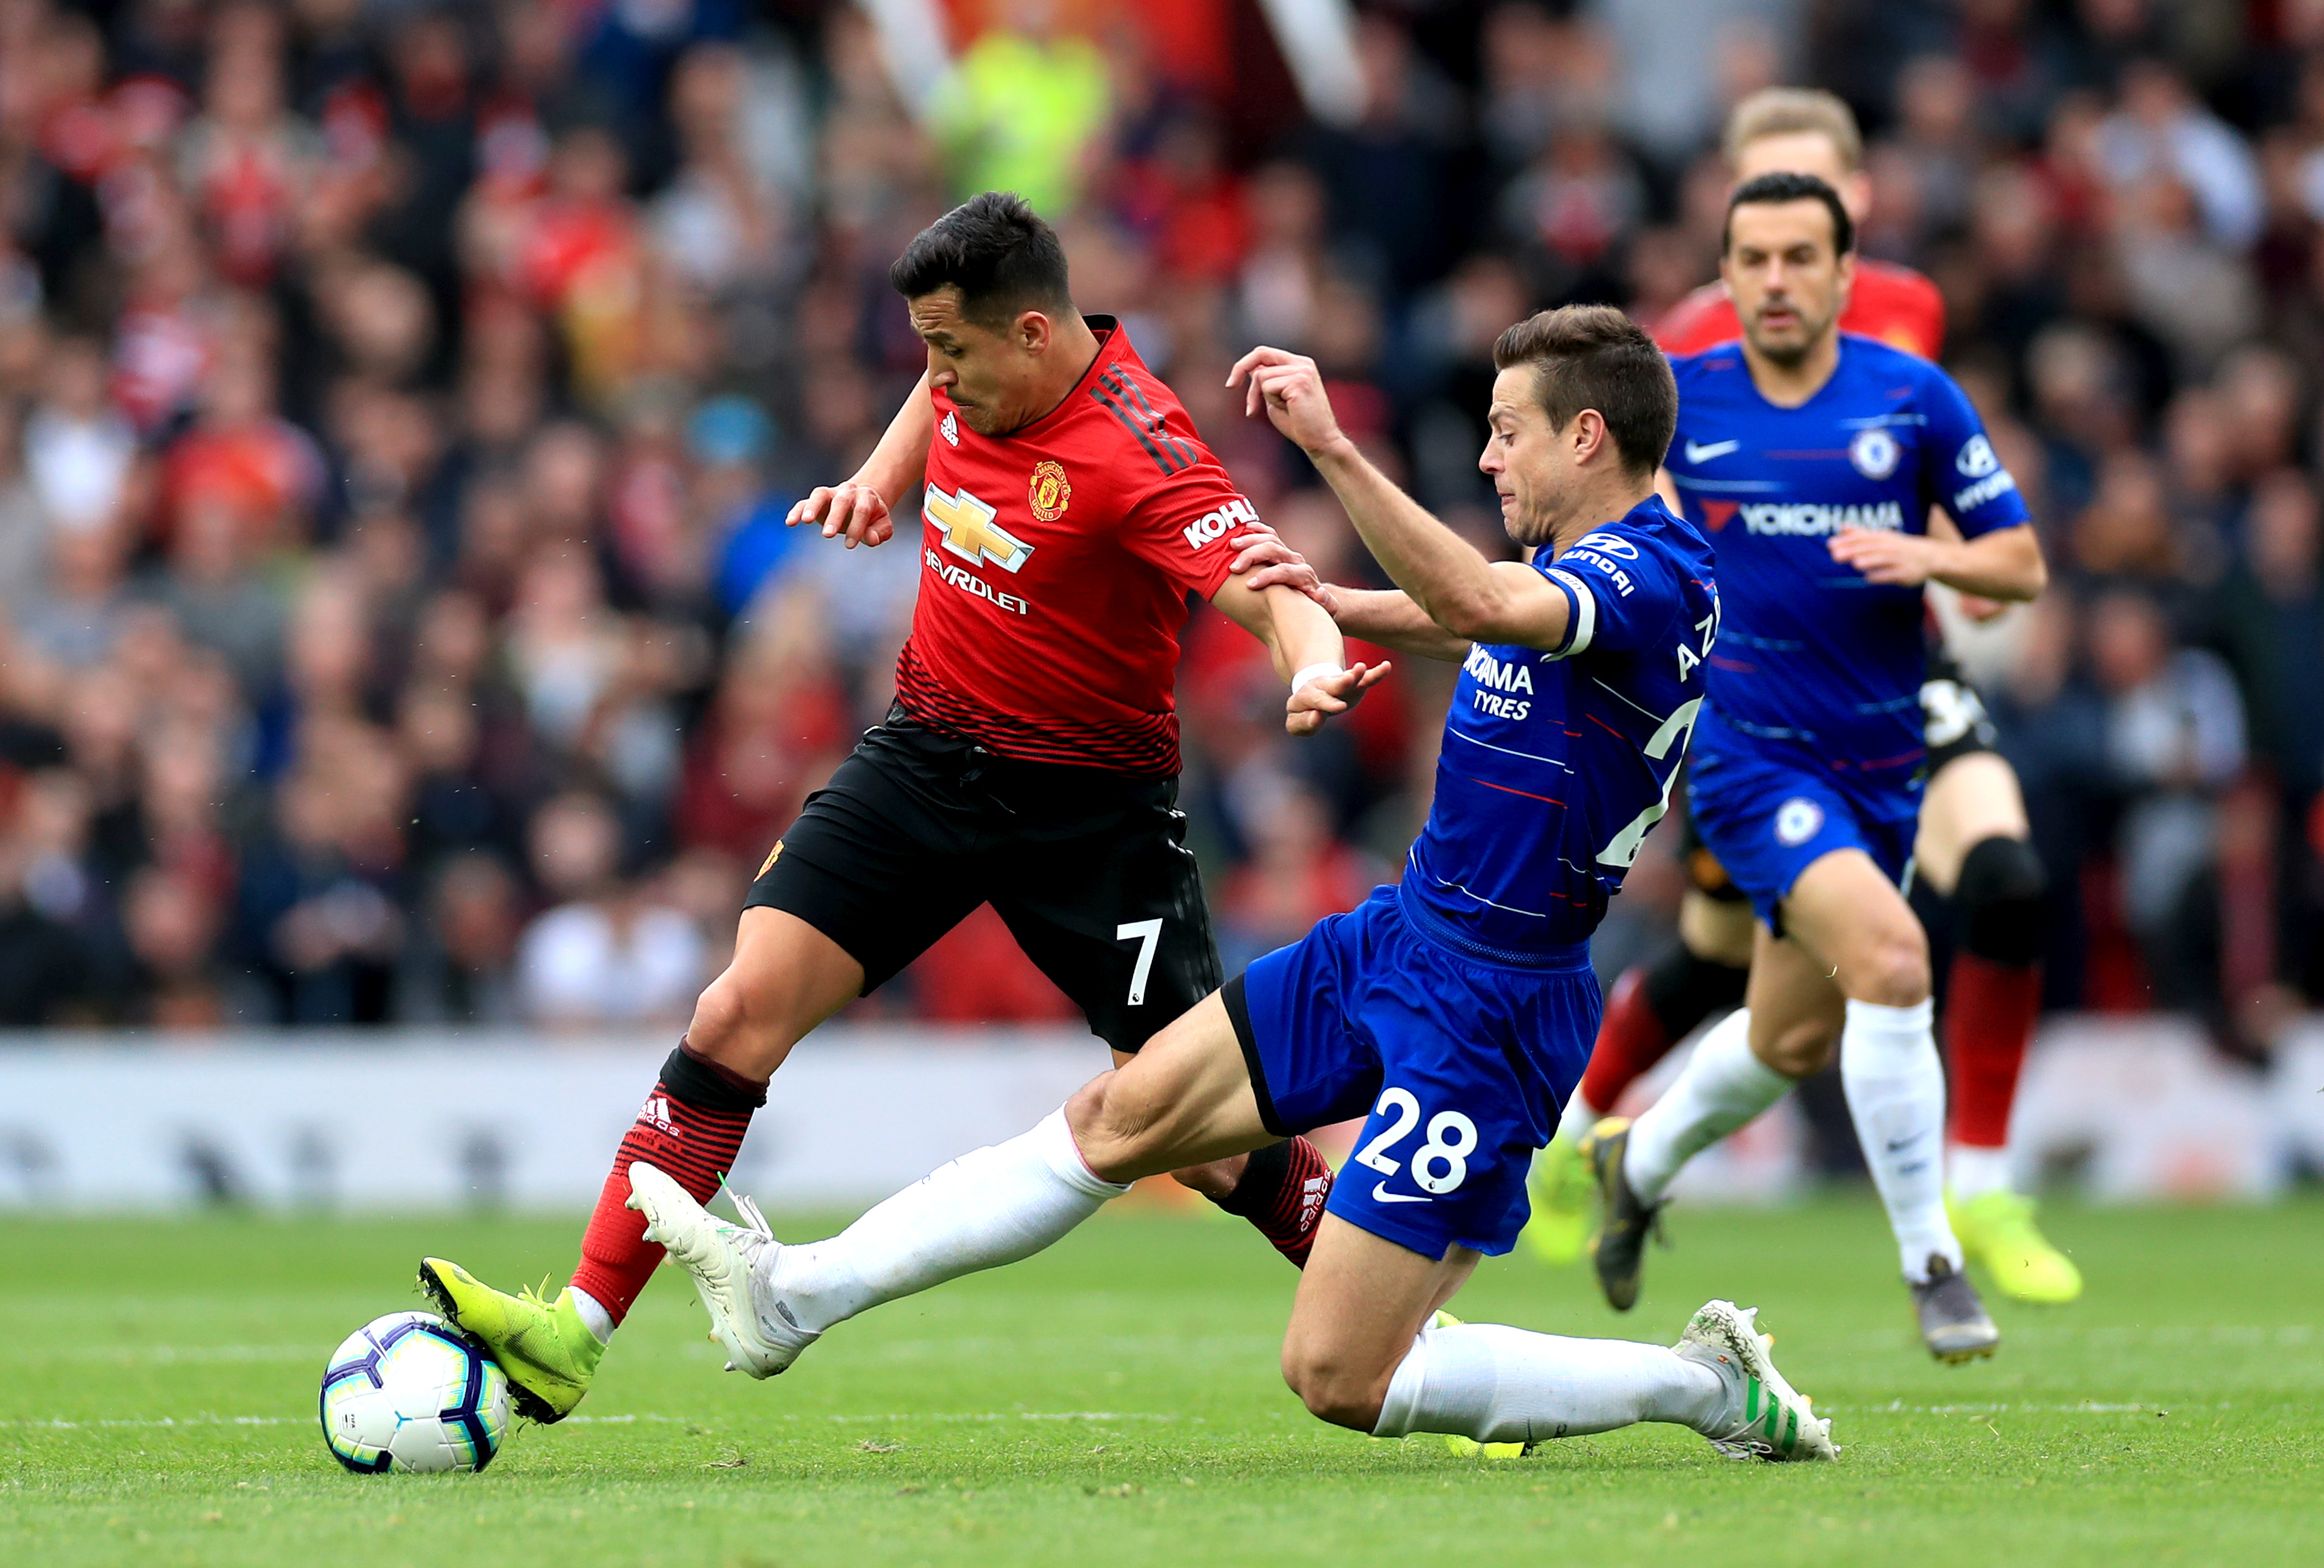 Proof that Alexis Sanchez touched the ball at least once against Chelsea. Image: PA Images